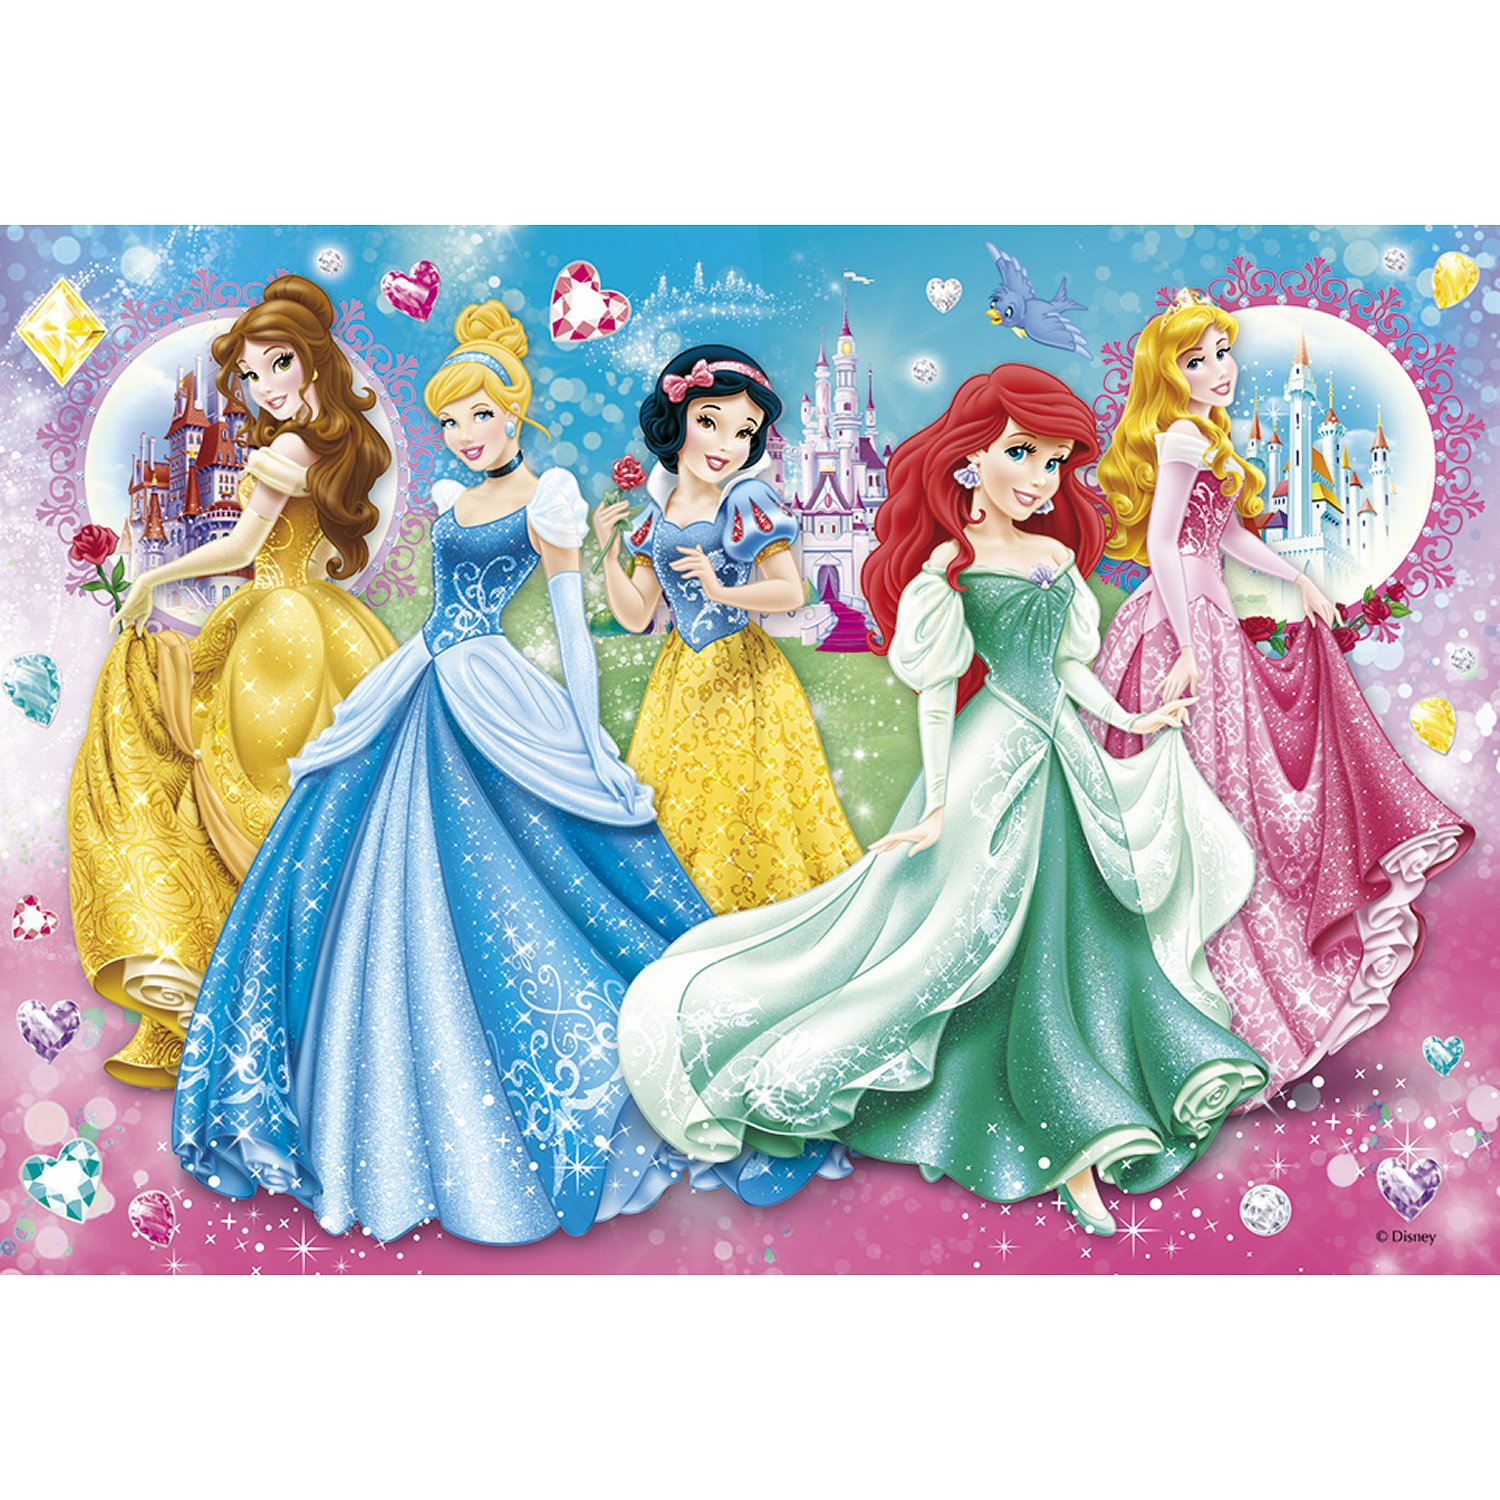 princesses disney 104 teile clementoni puzzle acheter en ligne. Black Bedroom Furniture Sets. Home Design Ideas